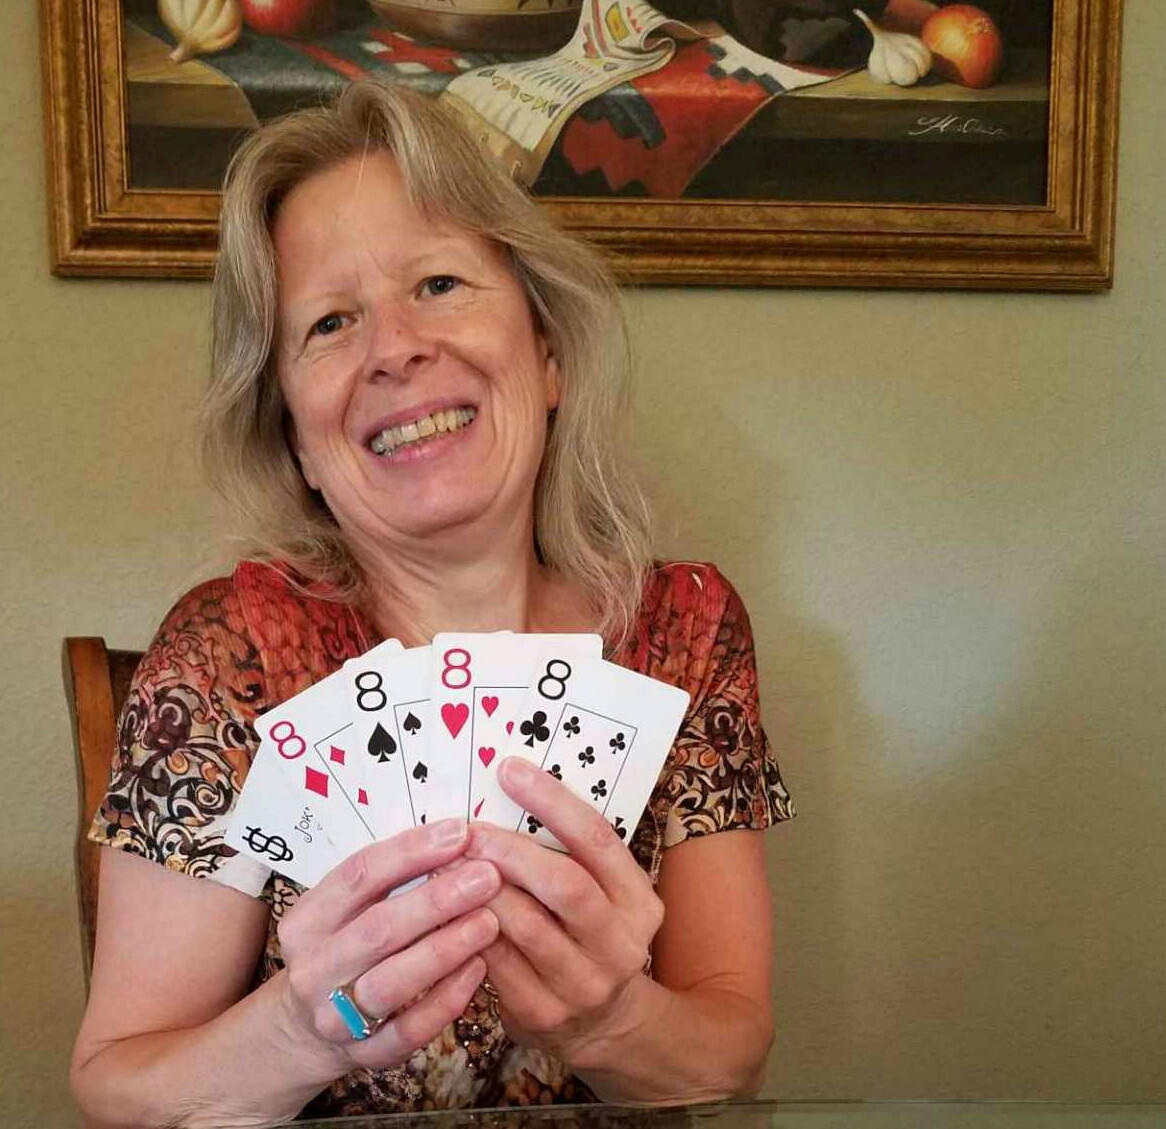 Milli Thornton with a hand full of lucky eights